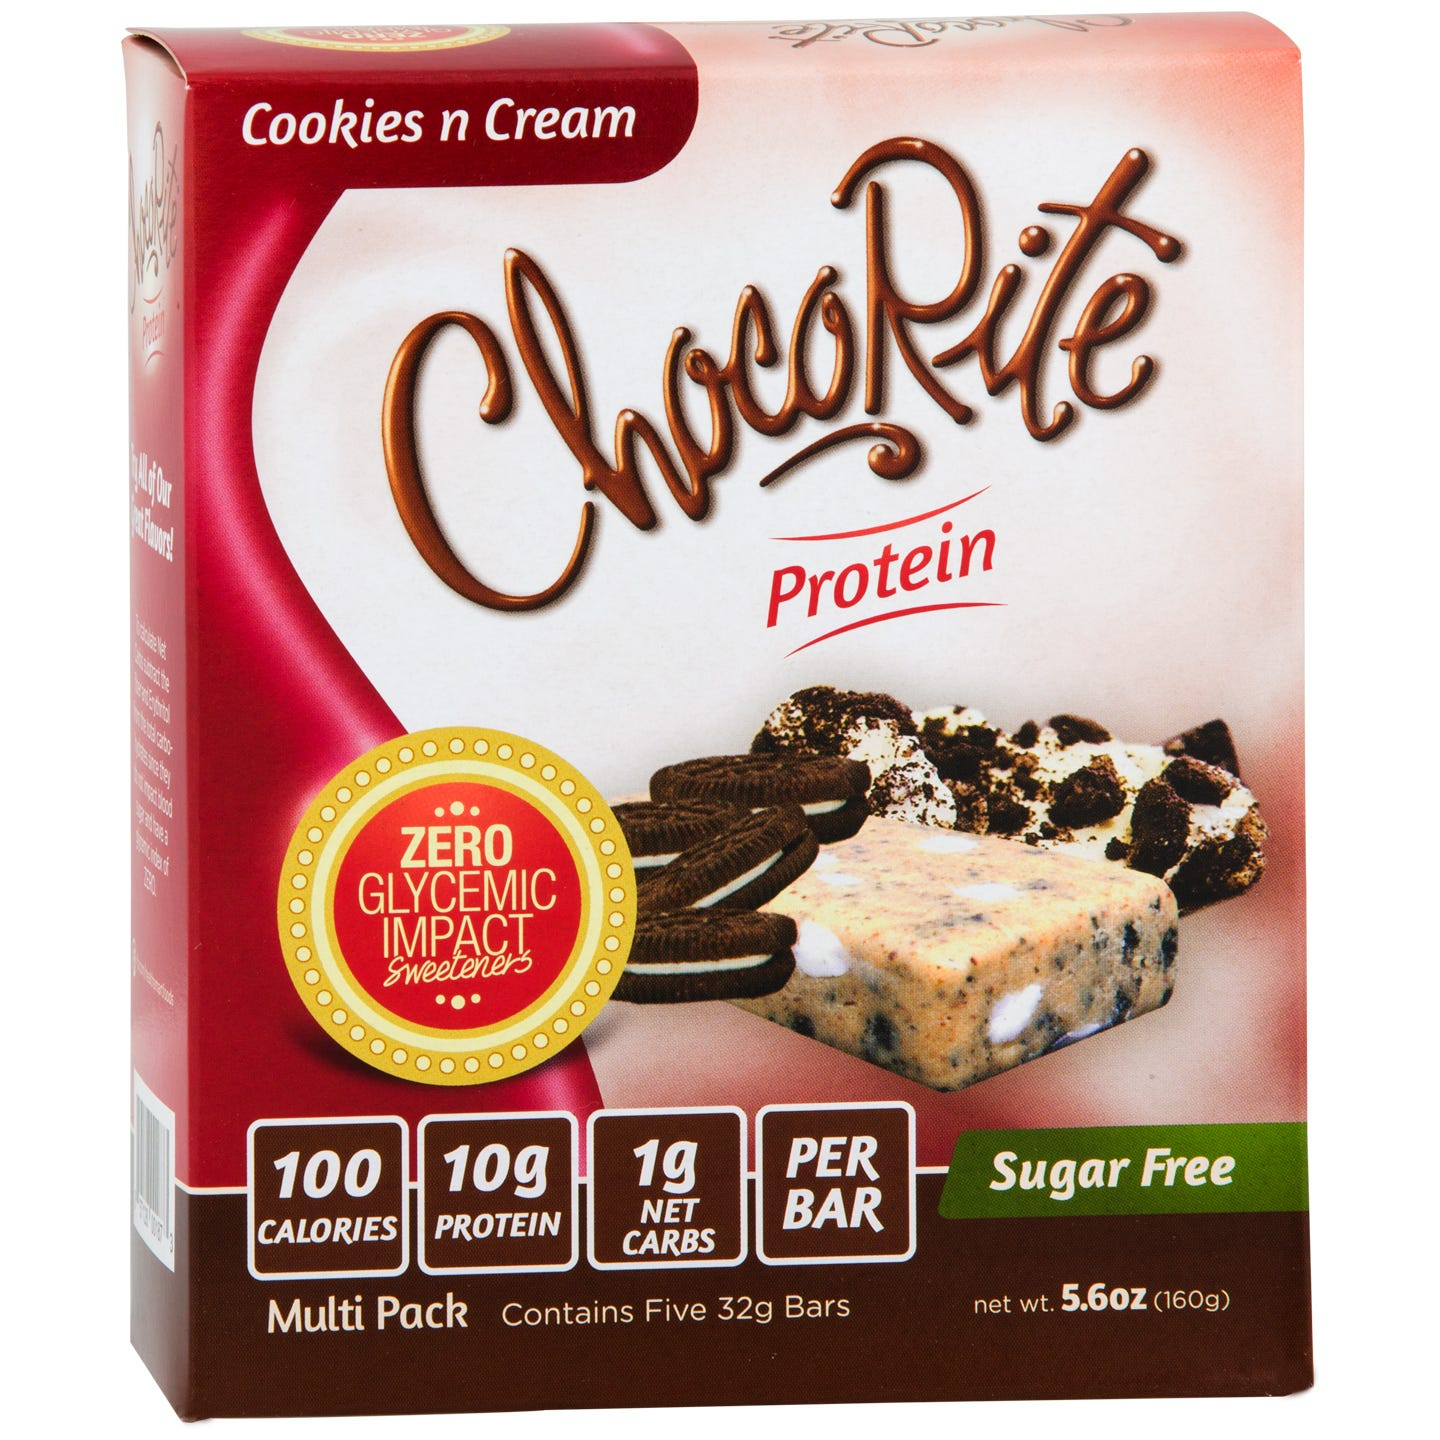 Sugar Free Protein Bar, Cookies n Cream (5 Bars) - ChocoRite - Rapid Diet Weight Loss Products Shop